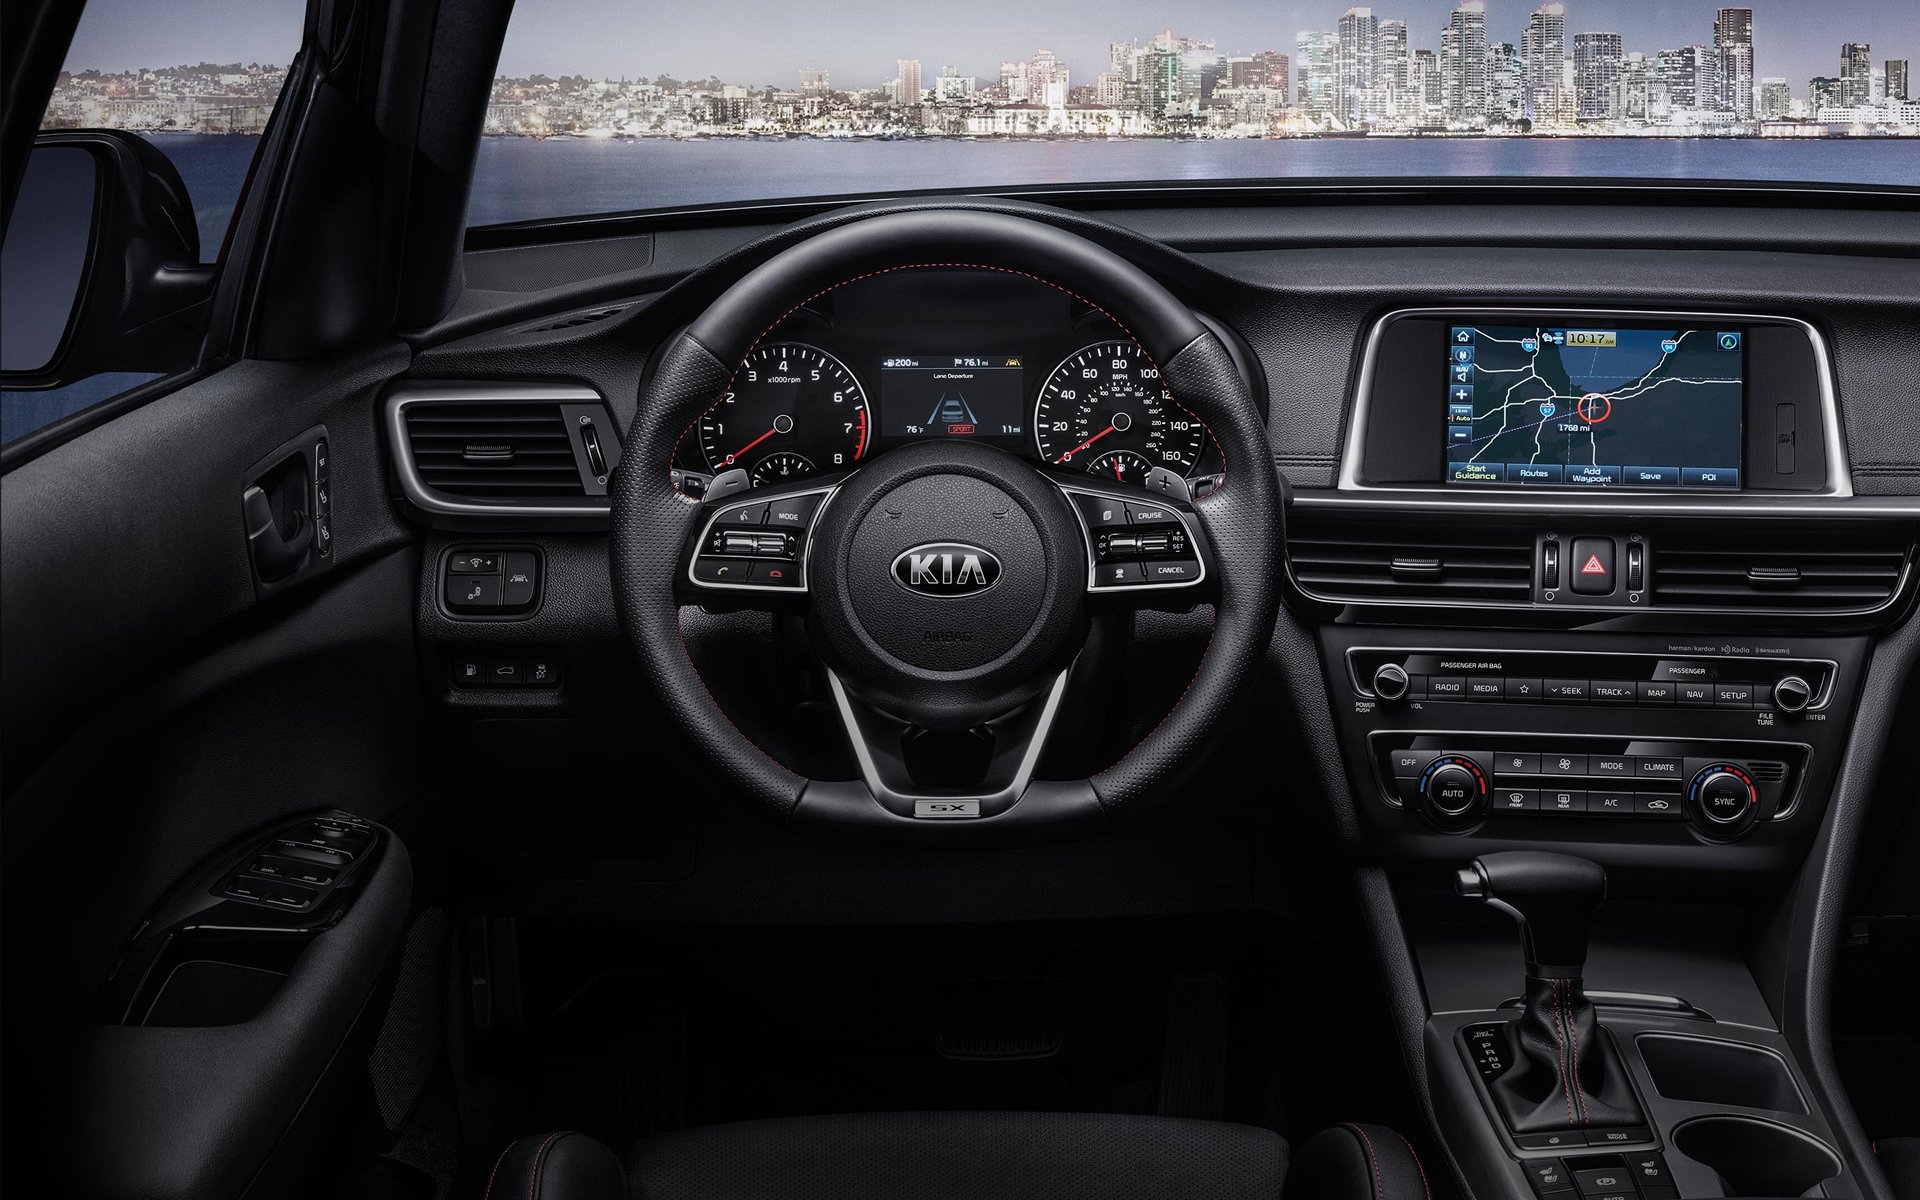 New 2019 Kia Optima Driver's Command Center.